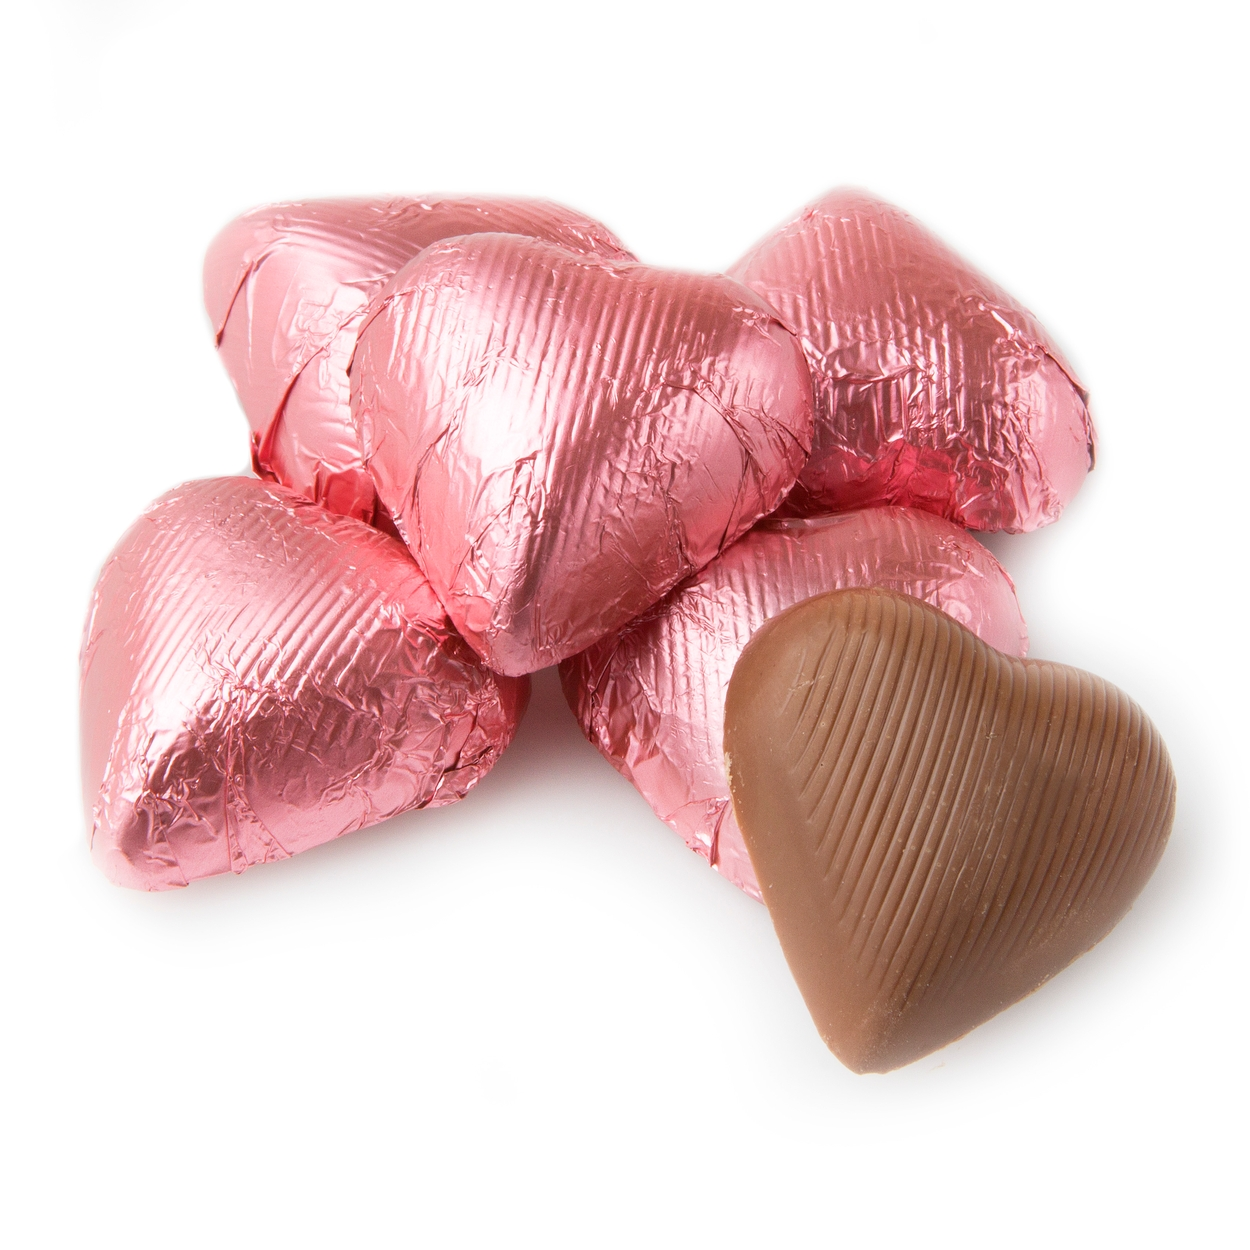 Bright Pink Foiled Milk Chocolate Hearts • Chocolate Candy Delights ...